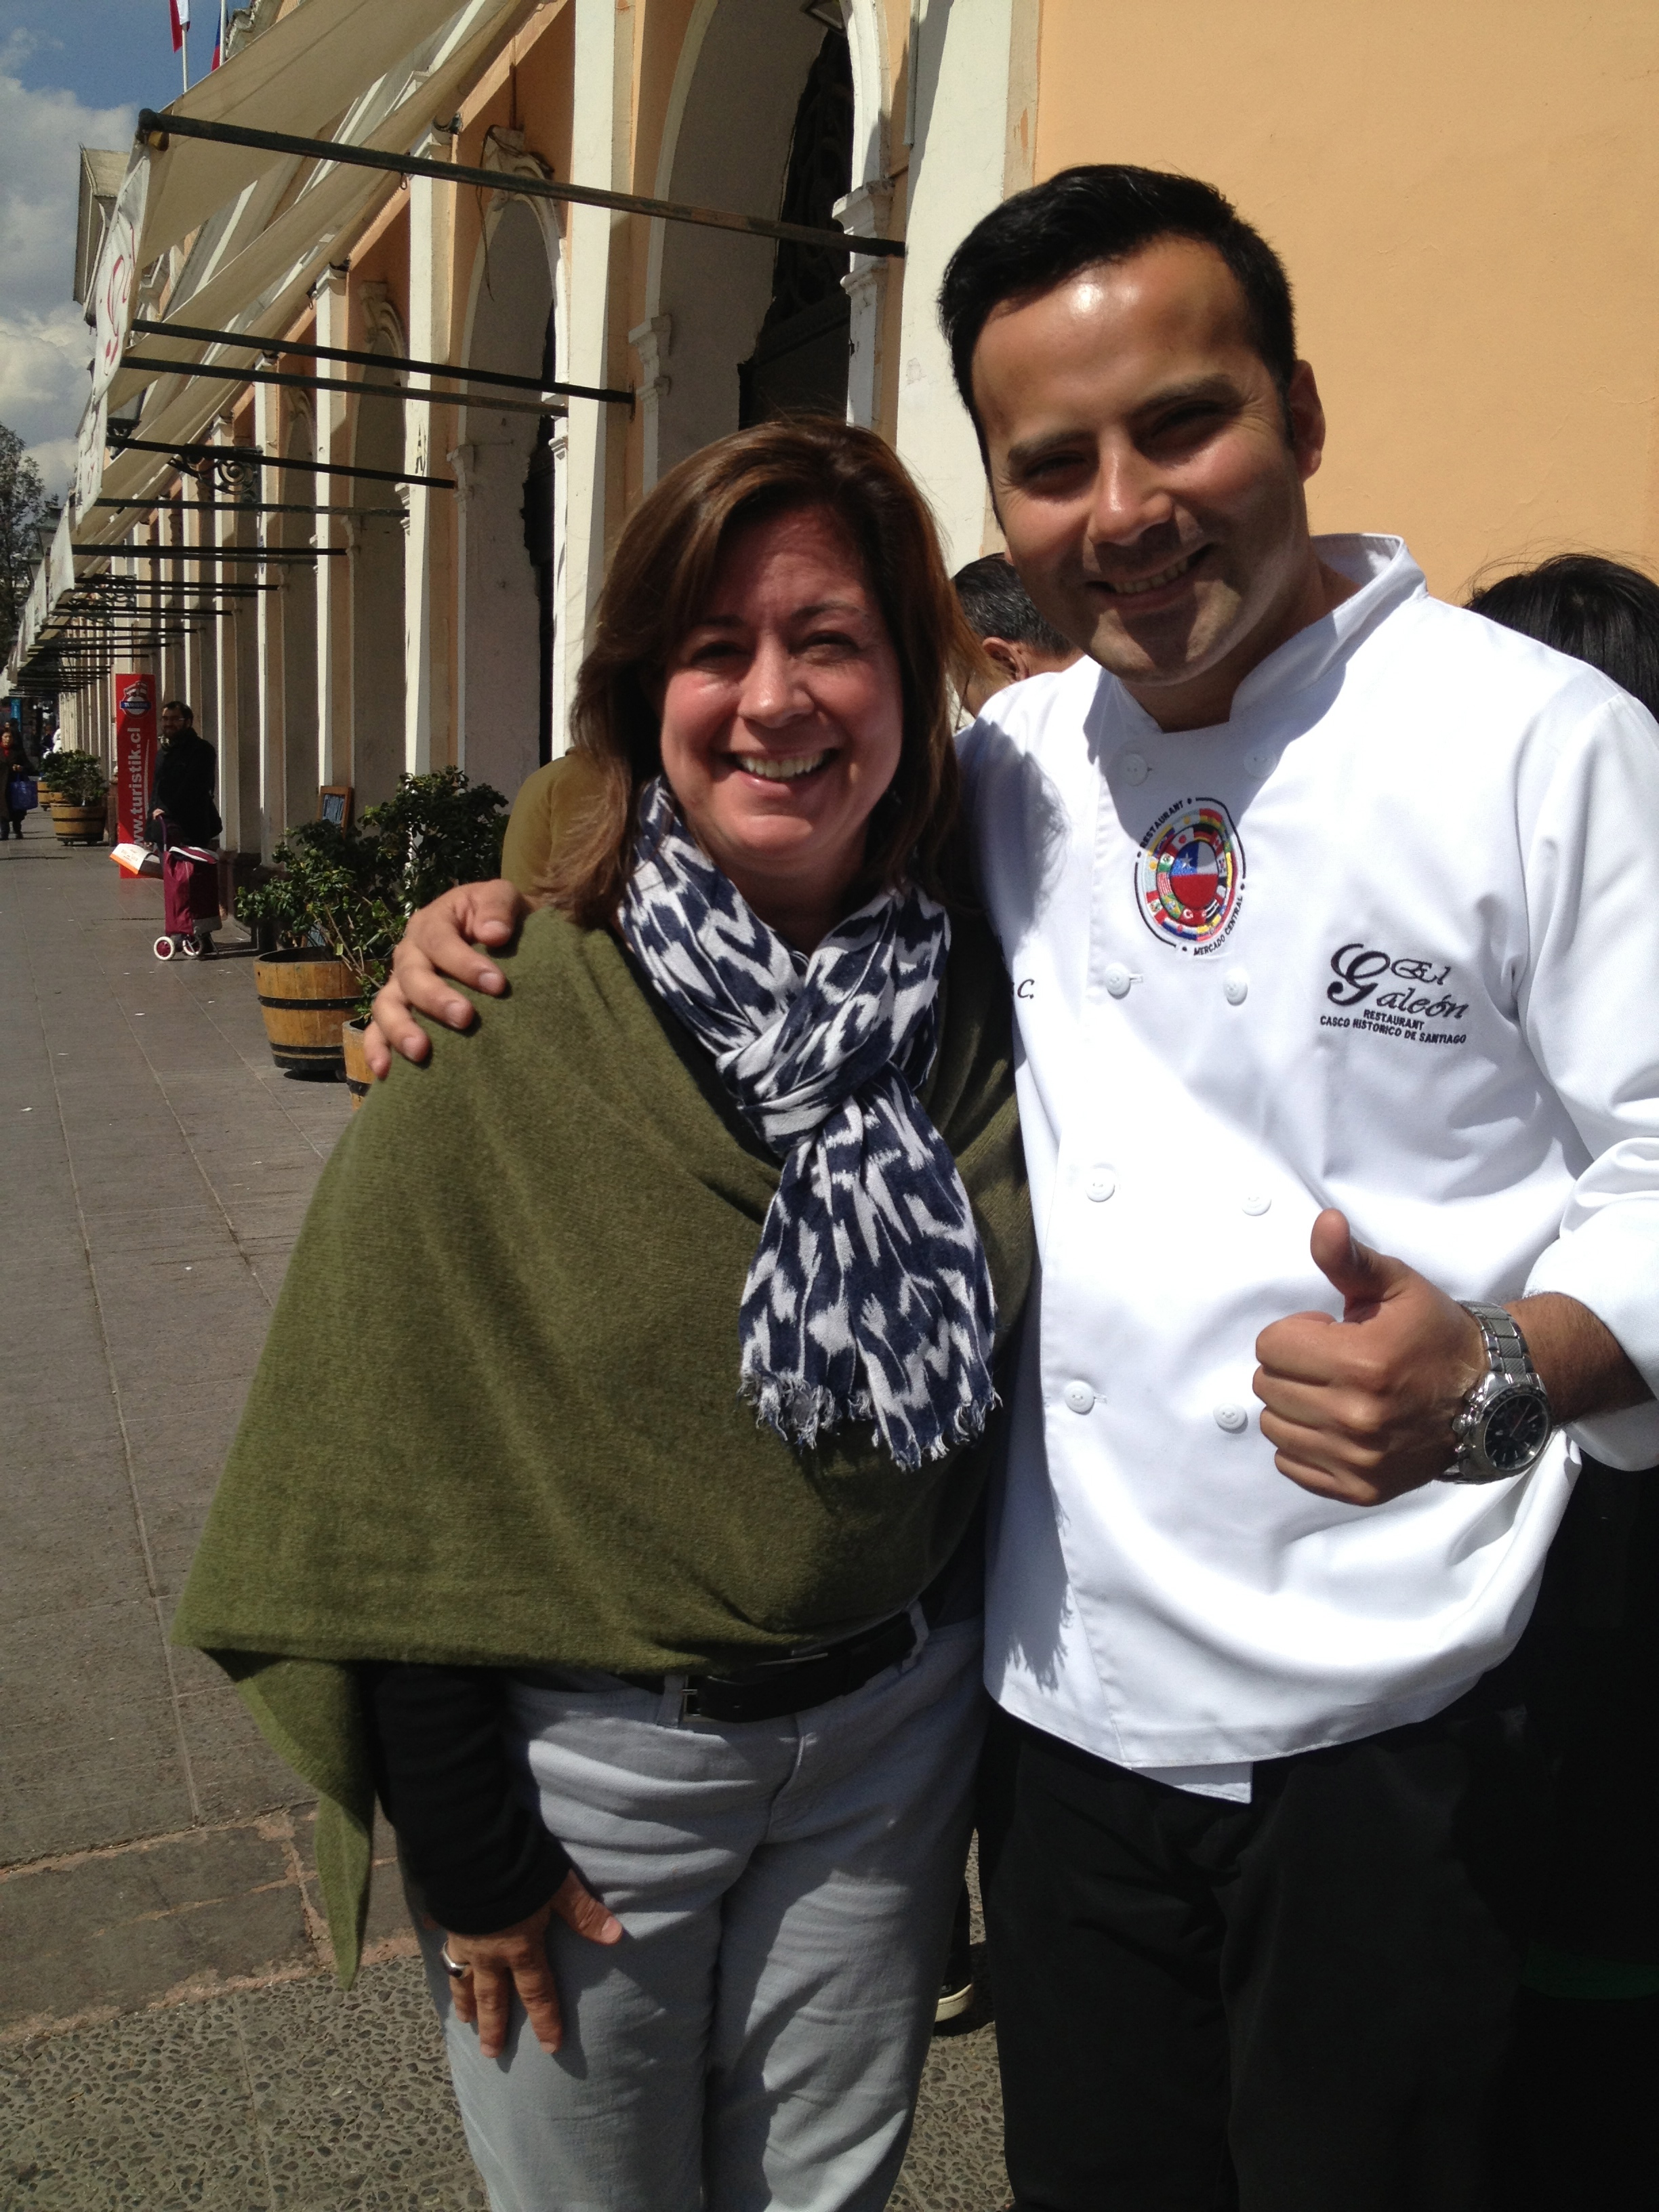 ...and, this is Annie's new friend, Jimmy, the head chef at El Galeón where we had lunch. (Clearly, Annie has better luck in making new friends.)